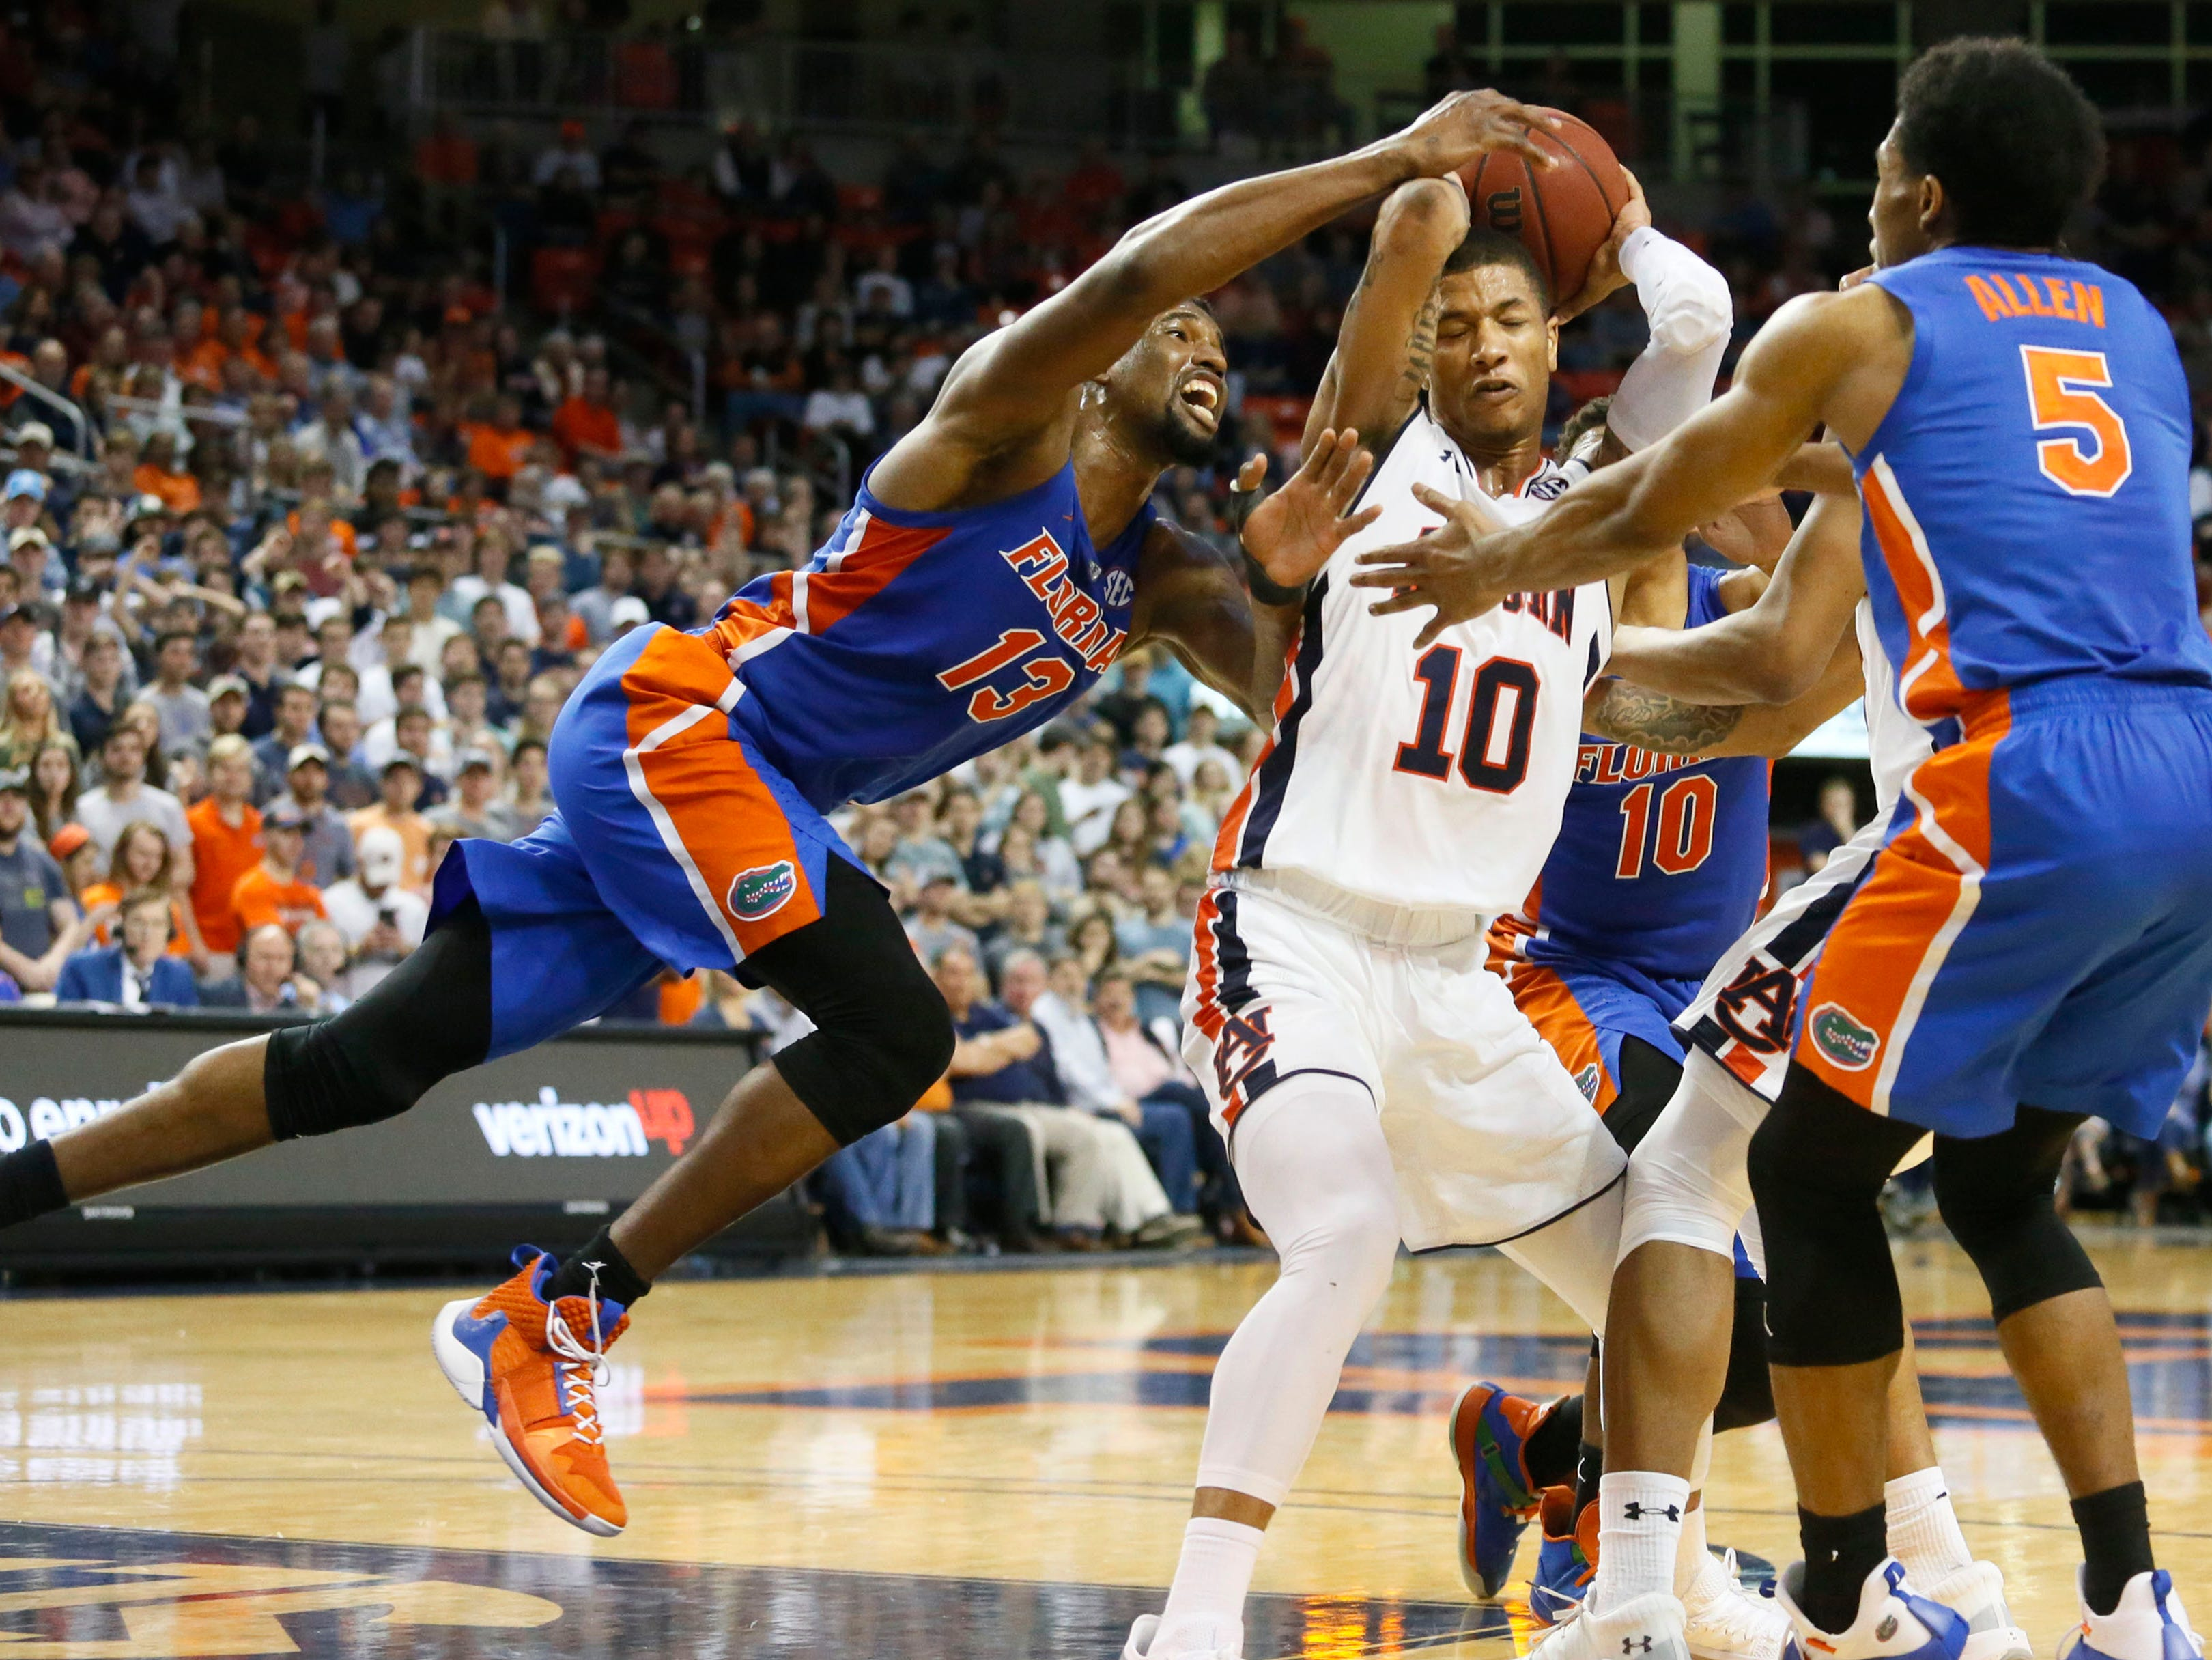 Feb 5, 2019; Auburn, AL, USA; Auburn Tigers guard Samir Doughty (10) is pressured by Florida Gators guard Kevaughn Allen (5) and center Kevarrius Hayes (13) during the second half at Auburn Arena. Mandatory Credit: John Reed-USA TODAY Sports